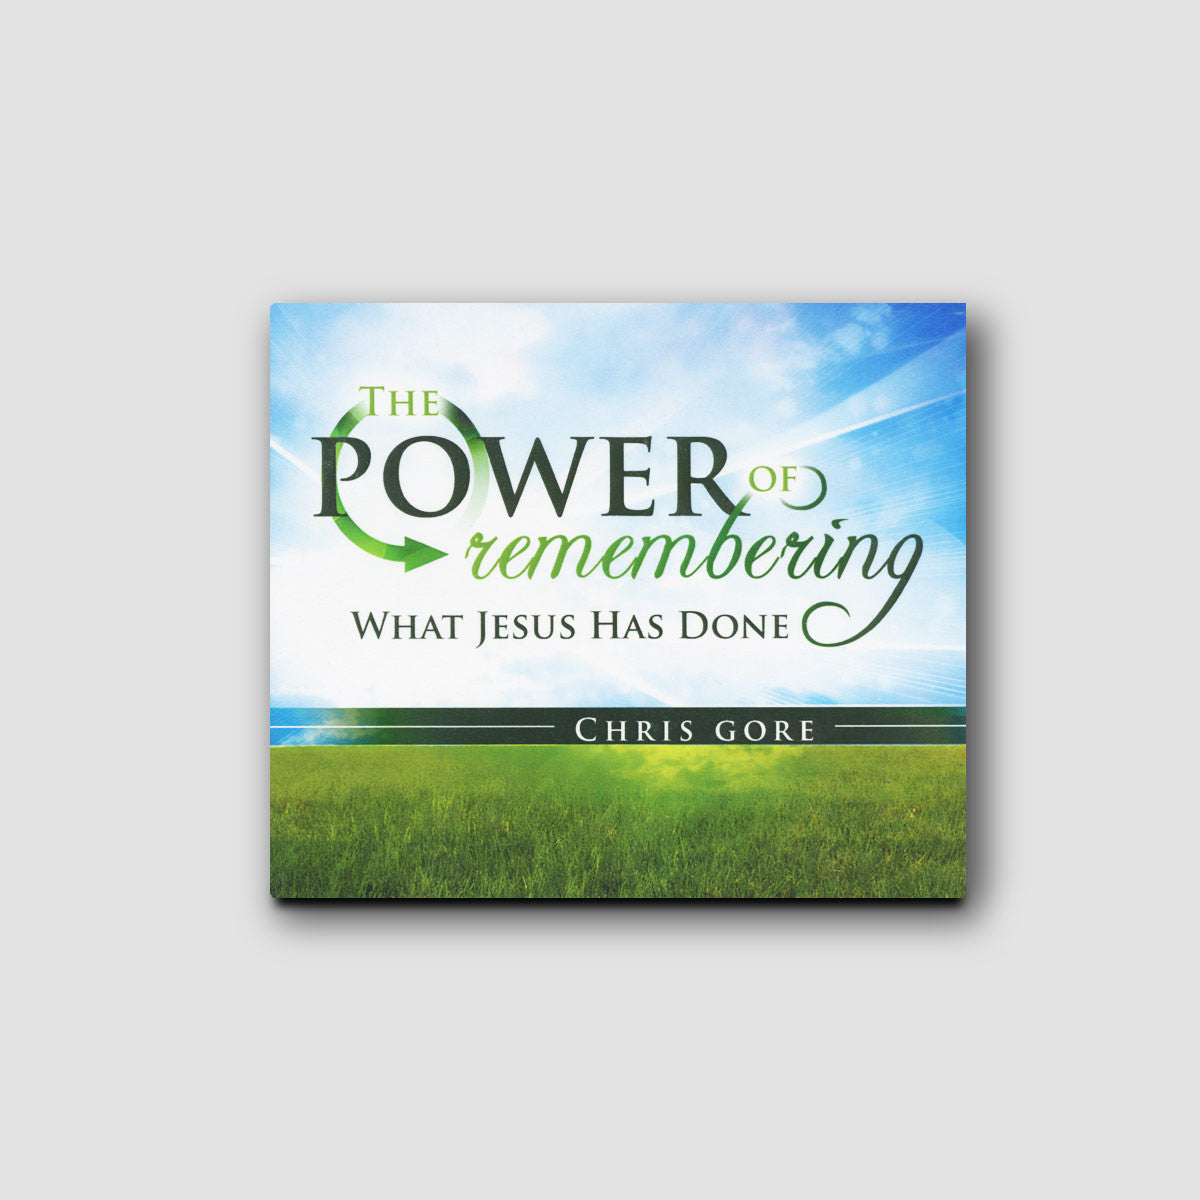 The Power of Remembering